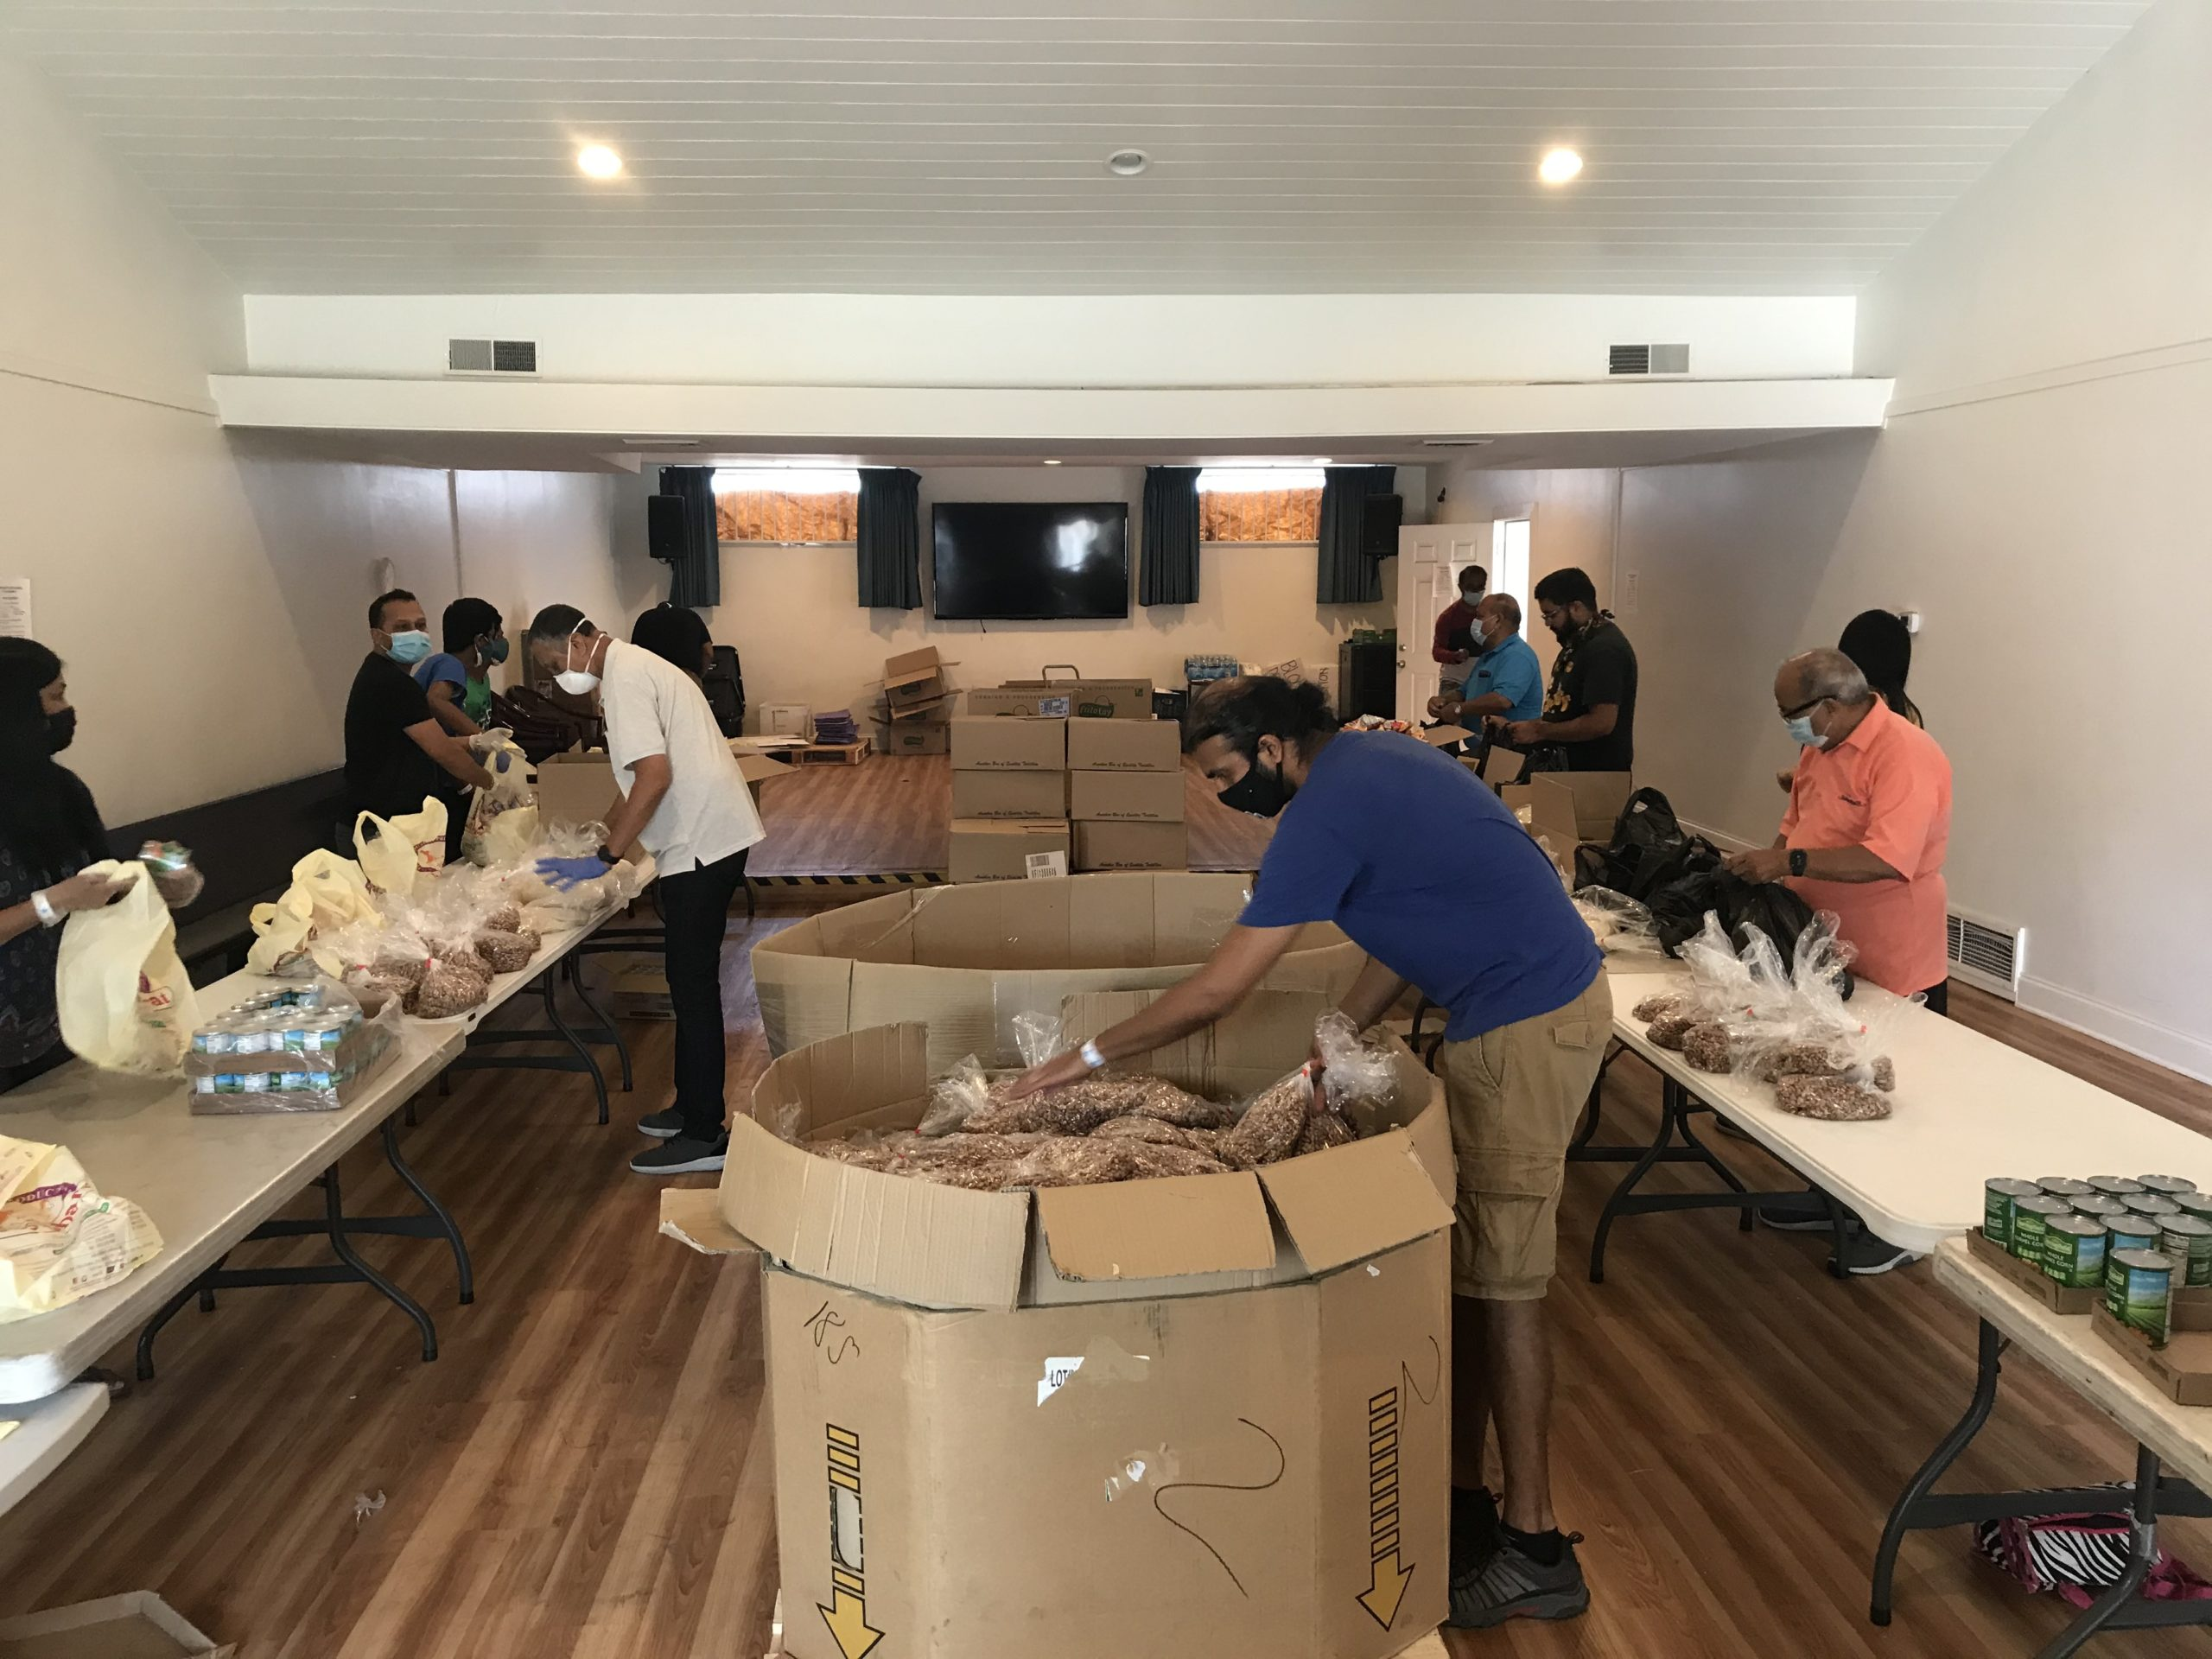 The Joy of Sharing Foundation donated the goods to fund this 21 week project. Over these weeks, we have served more than 40,000 people.